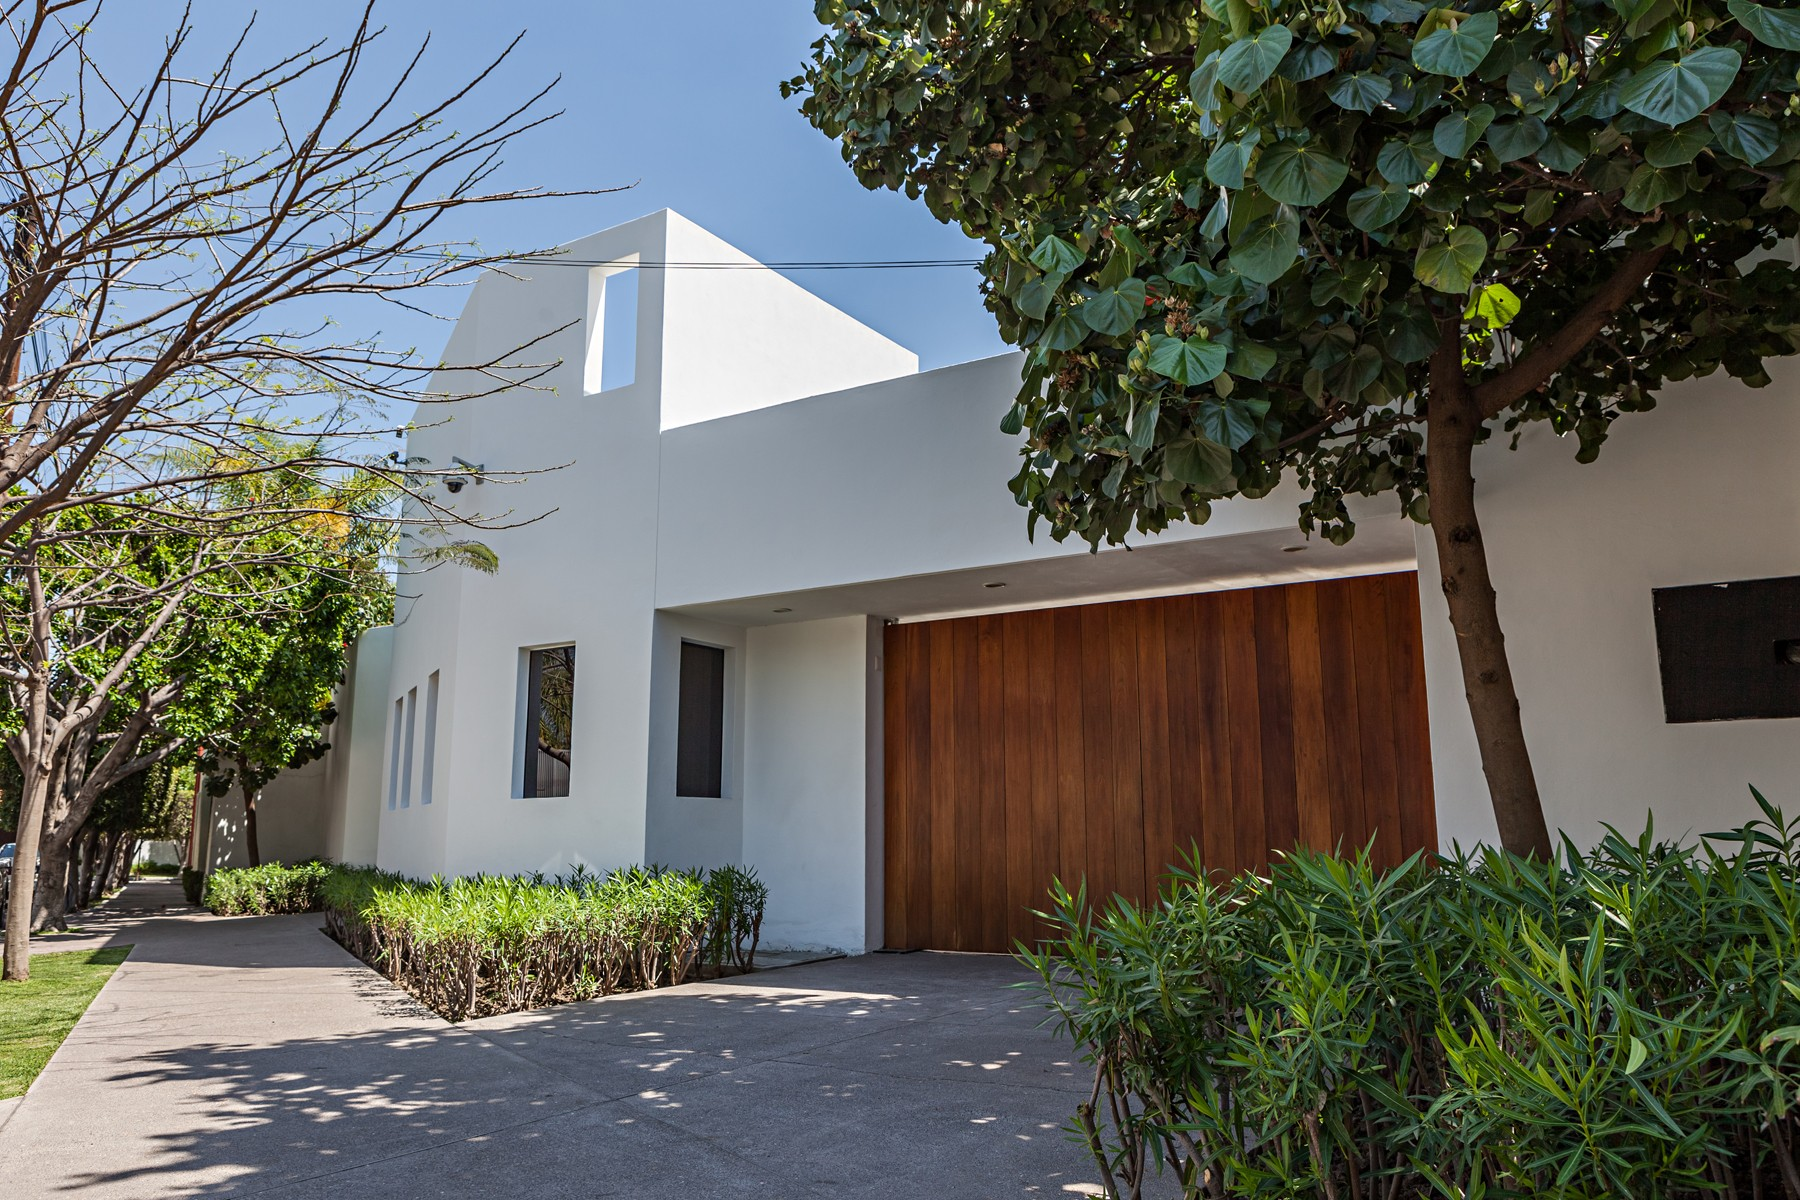 Single Family Home for Sale at Luxury Contemporary Residence in Zapopan Guadalajara, 45110 Mexico